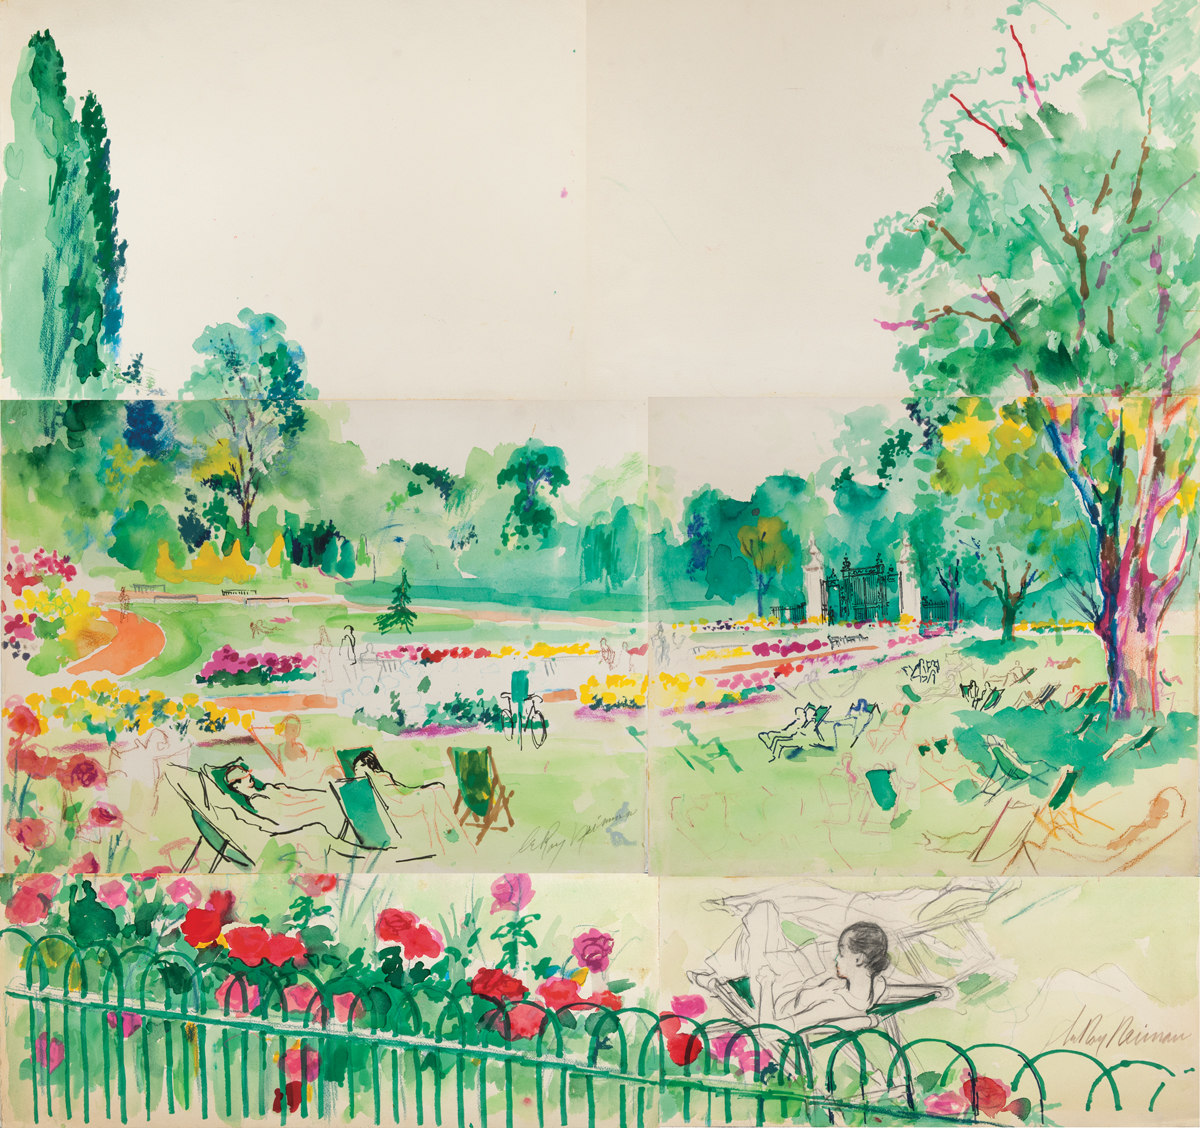 Janet in a London Park, Mixed Media on Paper, 40 X 36 in,